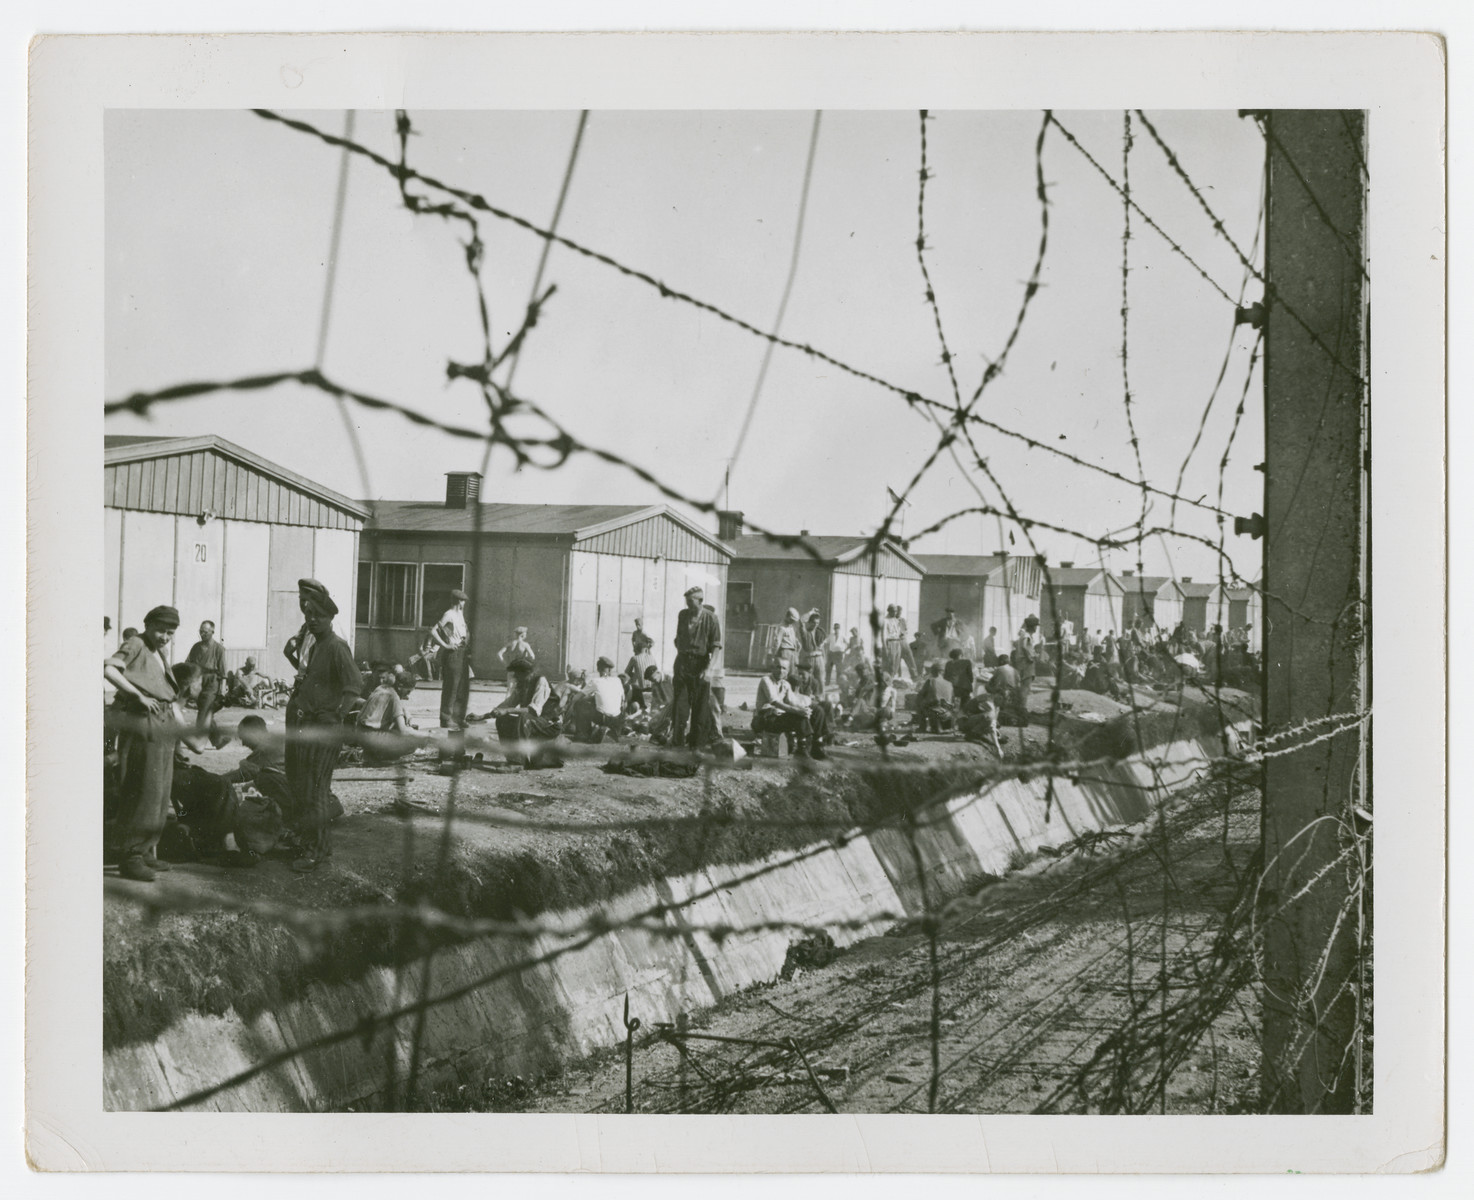 Survivors gather next to the moat of the Dachau concentration camp.